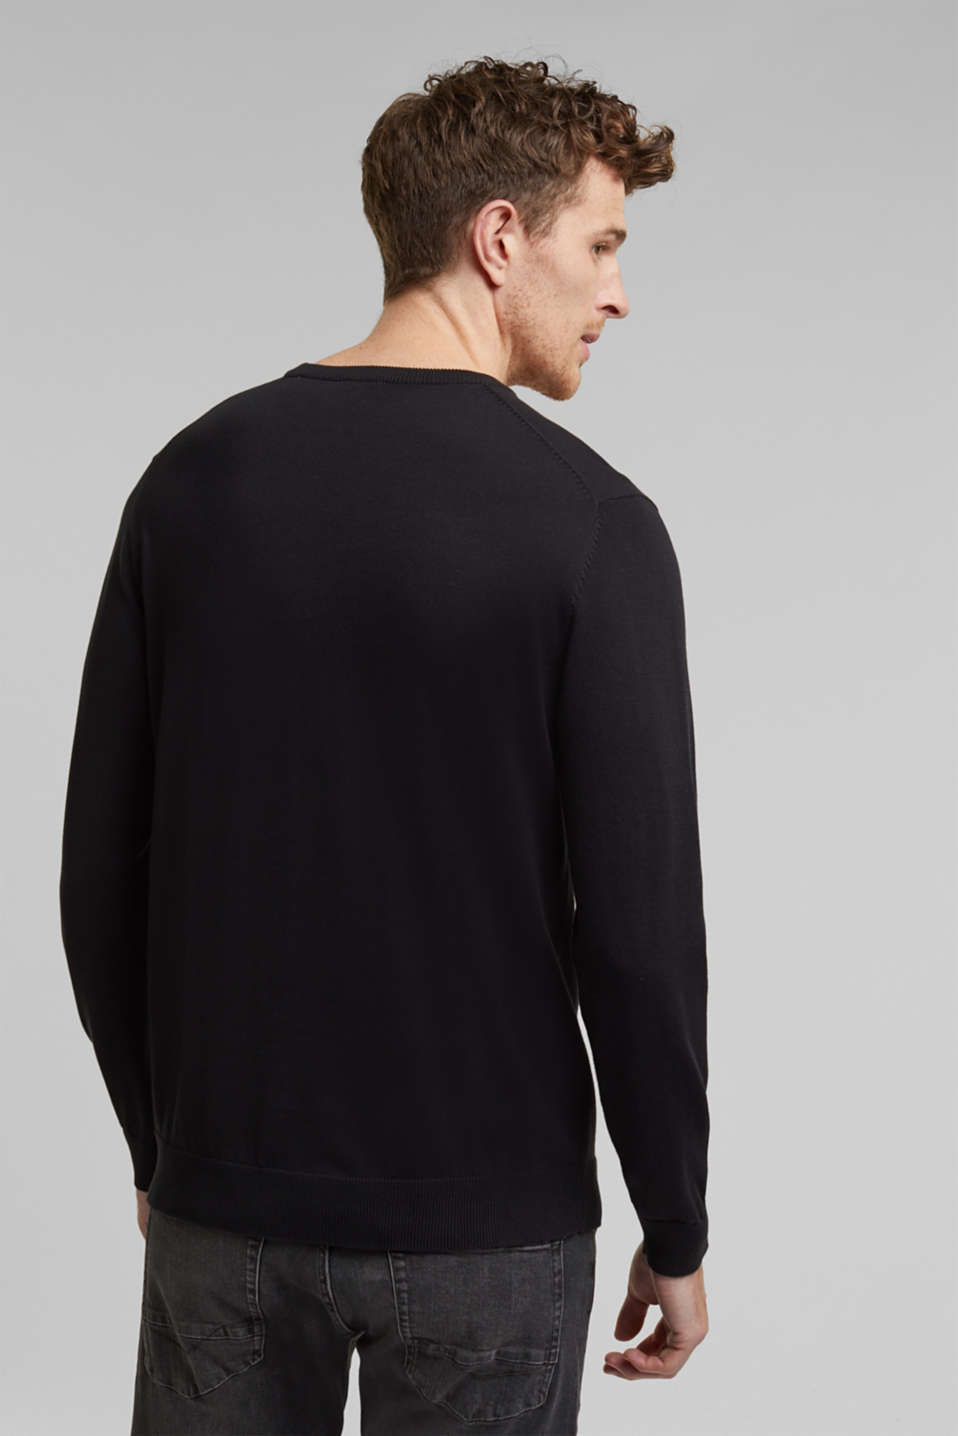 Jumper with a round neckline, 100% cotton, BLACK, detail image number 3